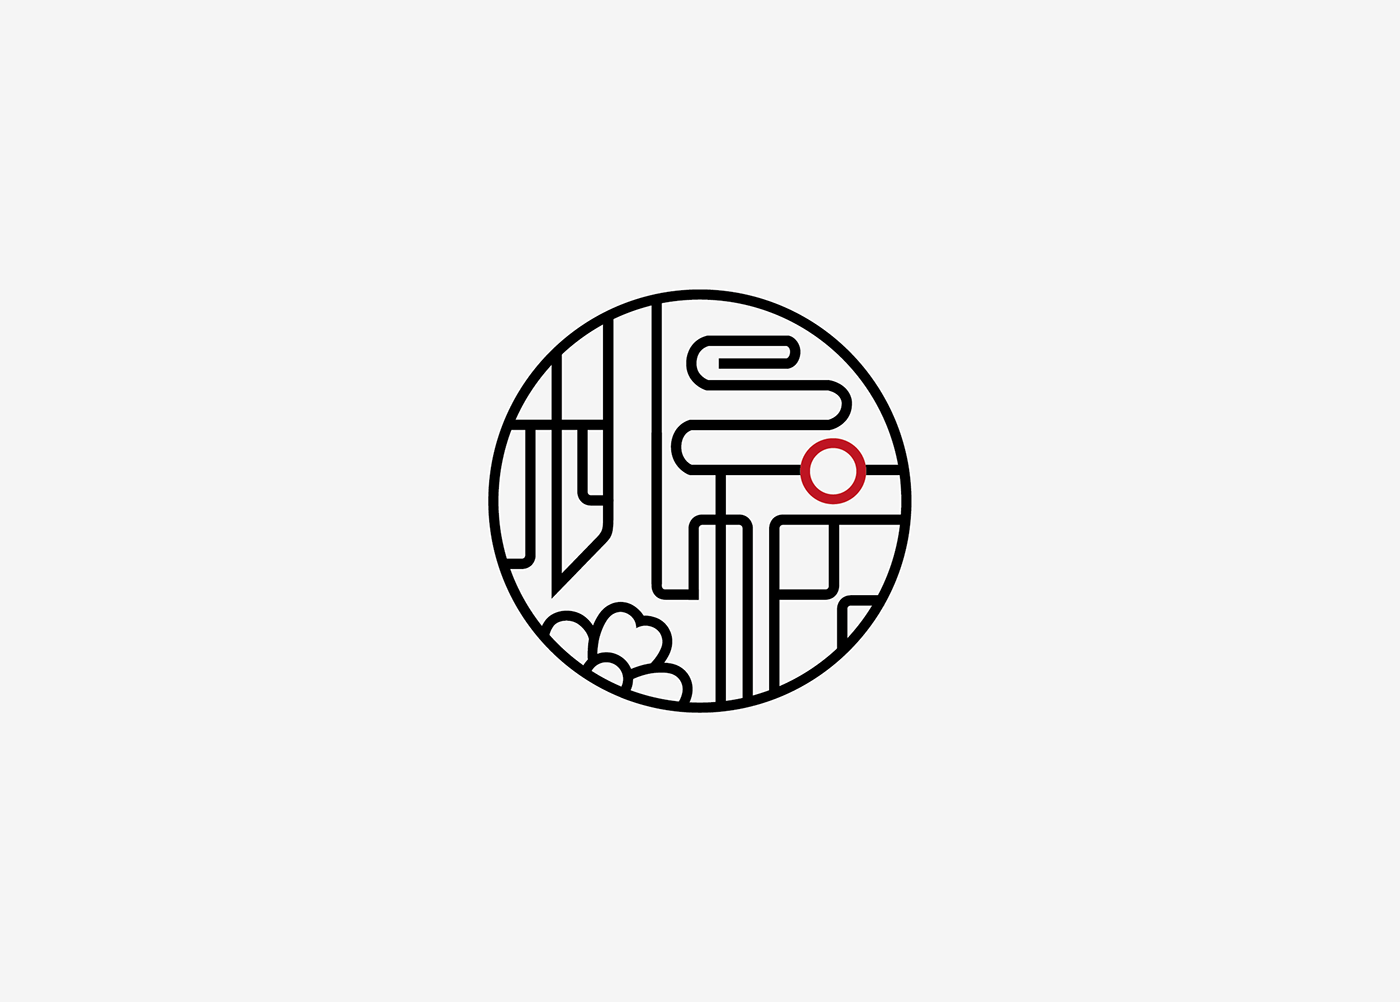 Chinese style logo on behance the red dot in the middle of the character fu represents the rising sun brings energy hope and life together with the floating clouds and peach buycottarizona